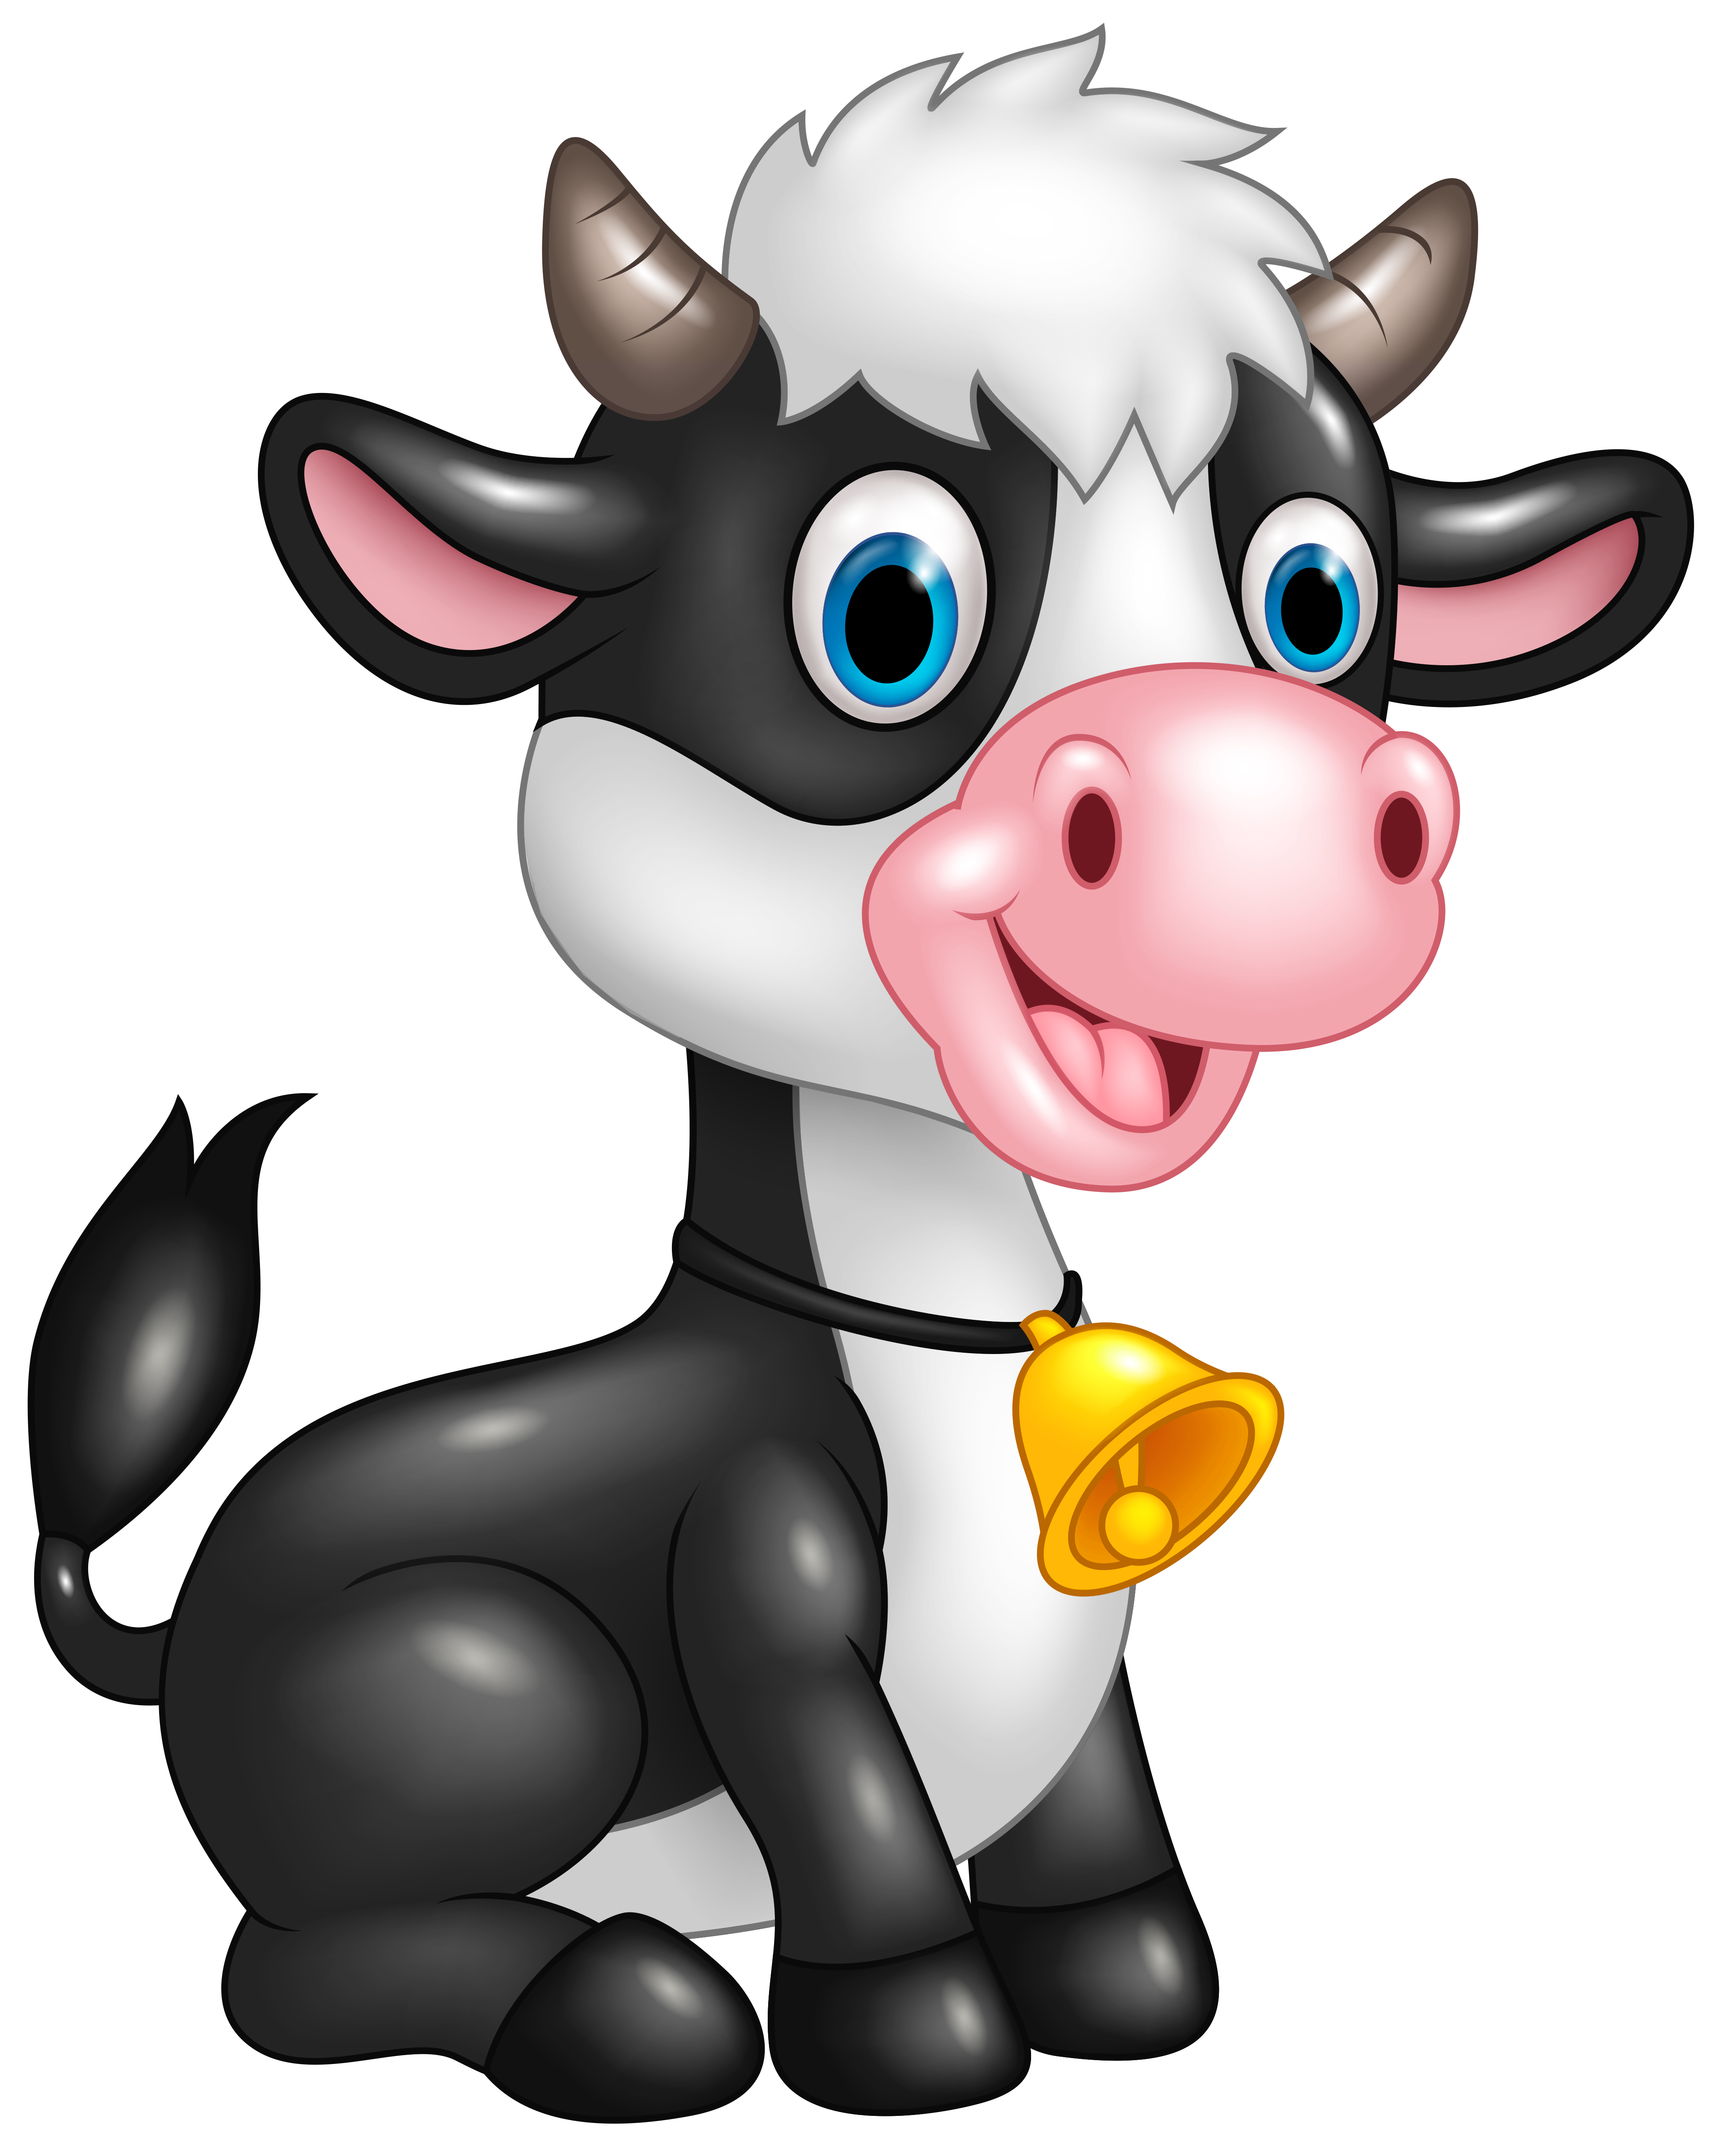 Cute Cow Cartoon PNG Clipart Image.